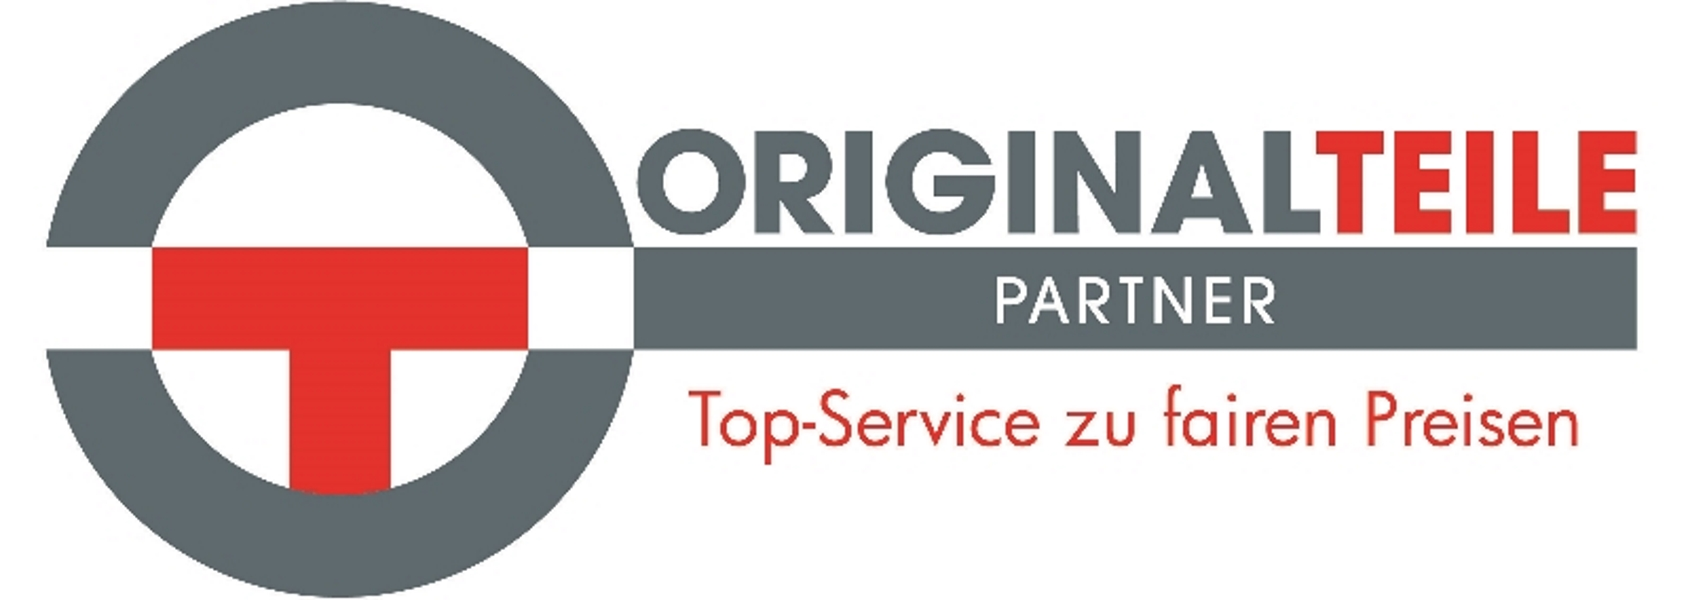 Birner Originalteile Partner Logo